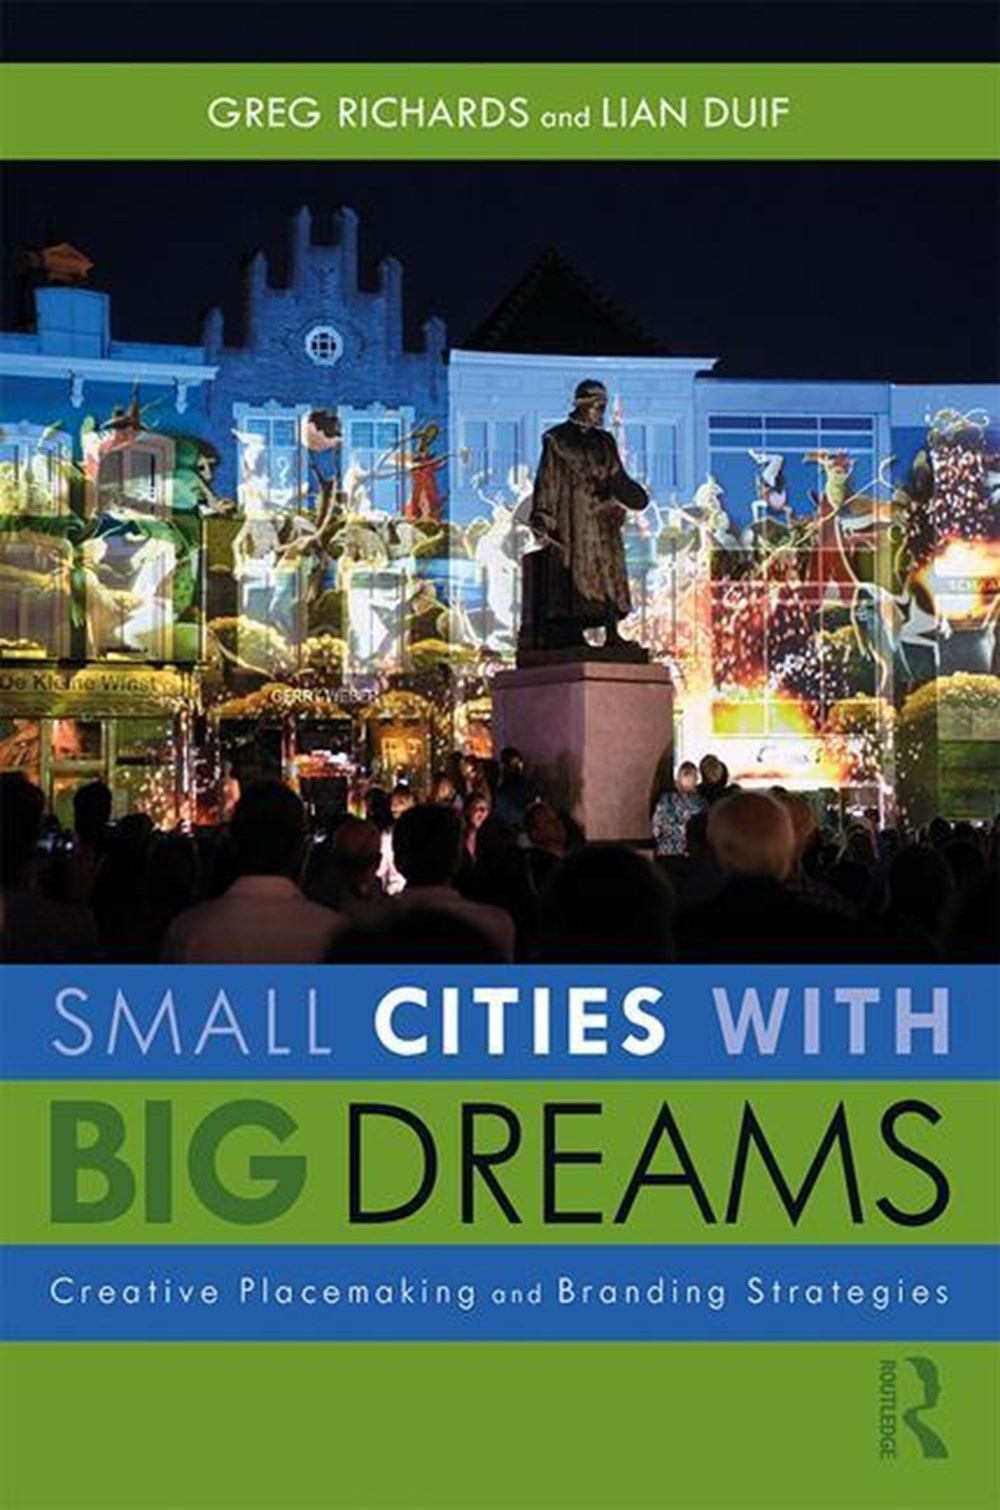 Small Cities with Big Dreams Creative Placemaking and Branding Strategies